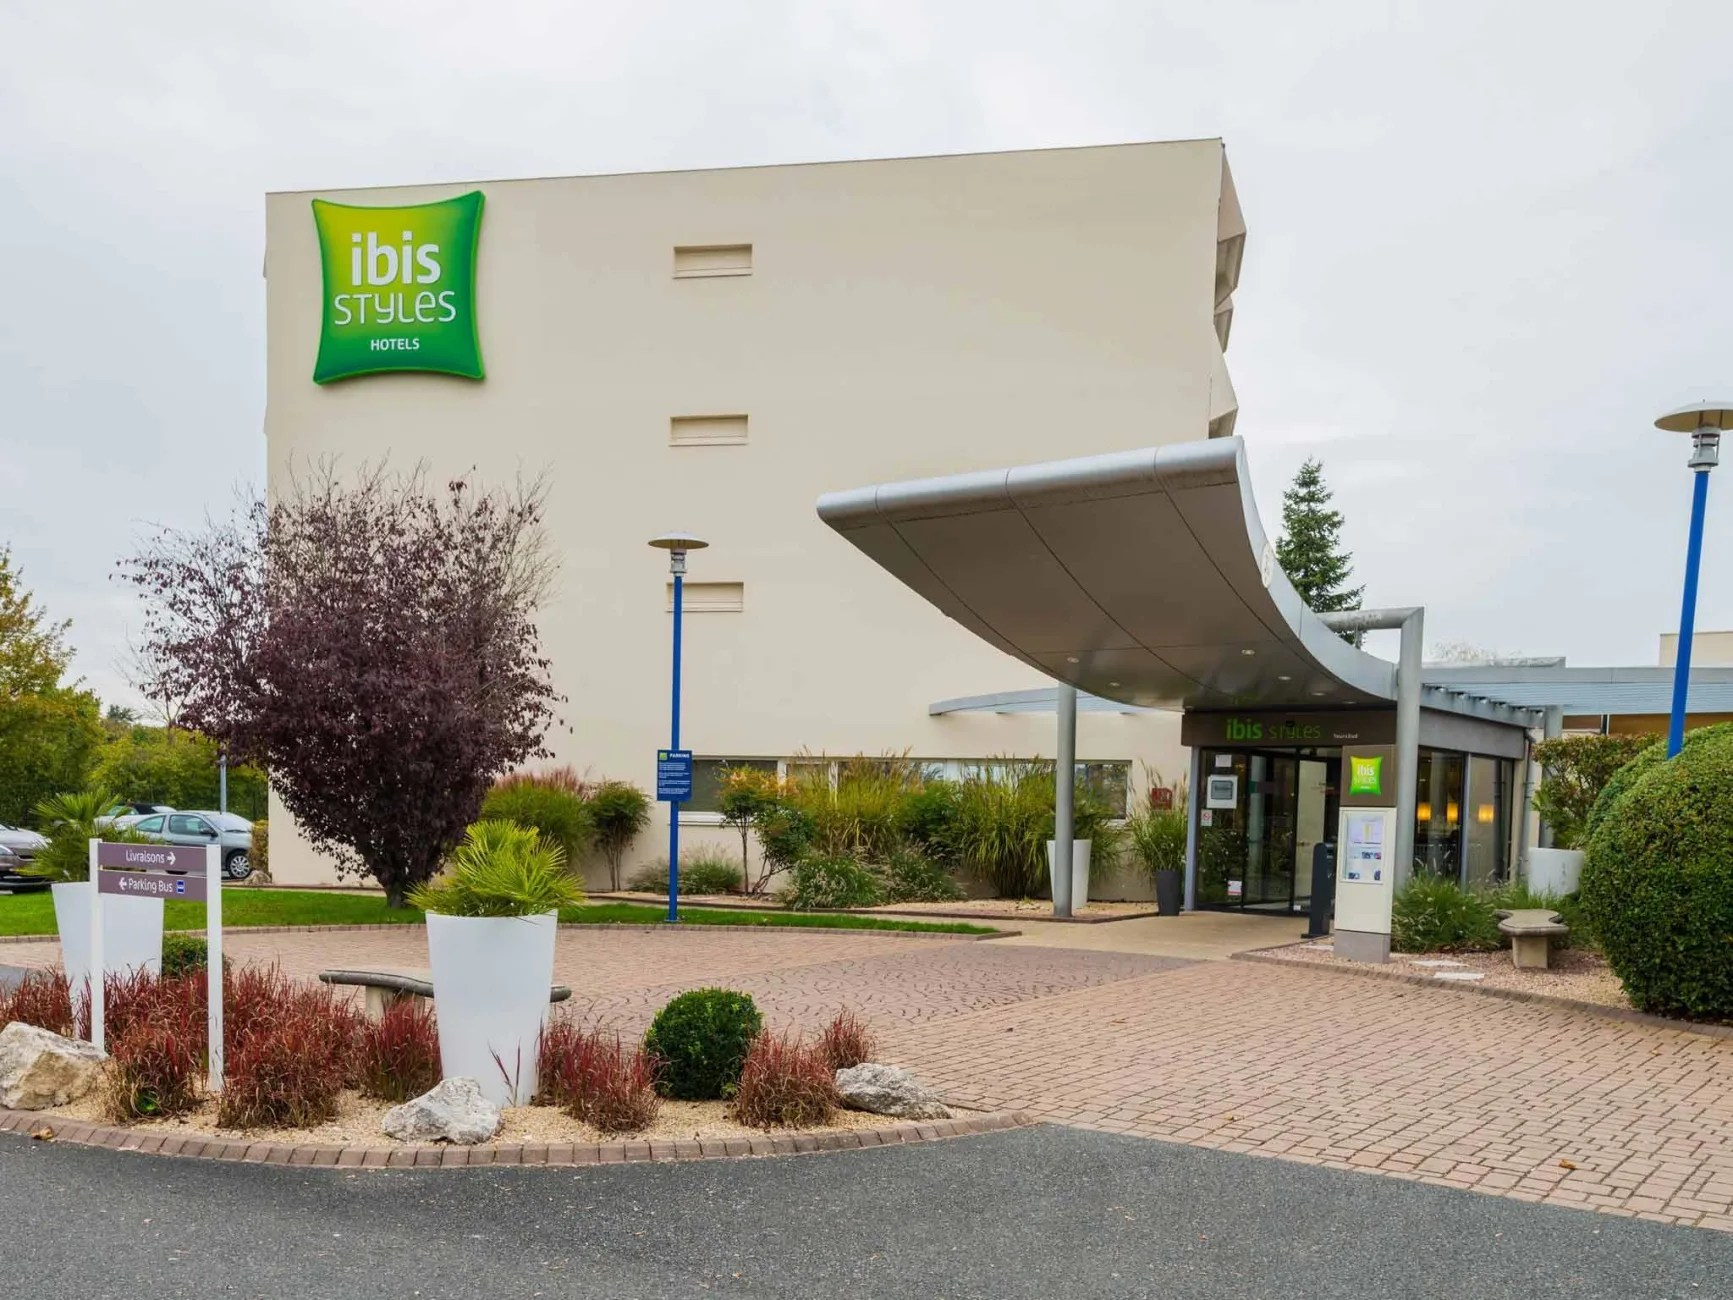 Hotel Chambray Les Tours Hotel Hotel Ibis Styles Tours Sud Chambray Lès Tours Trivago De